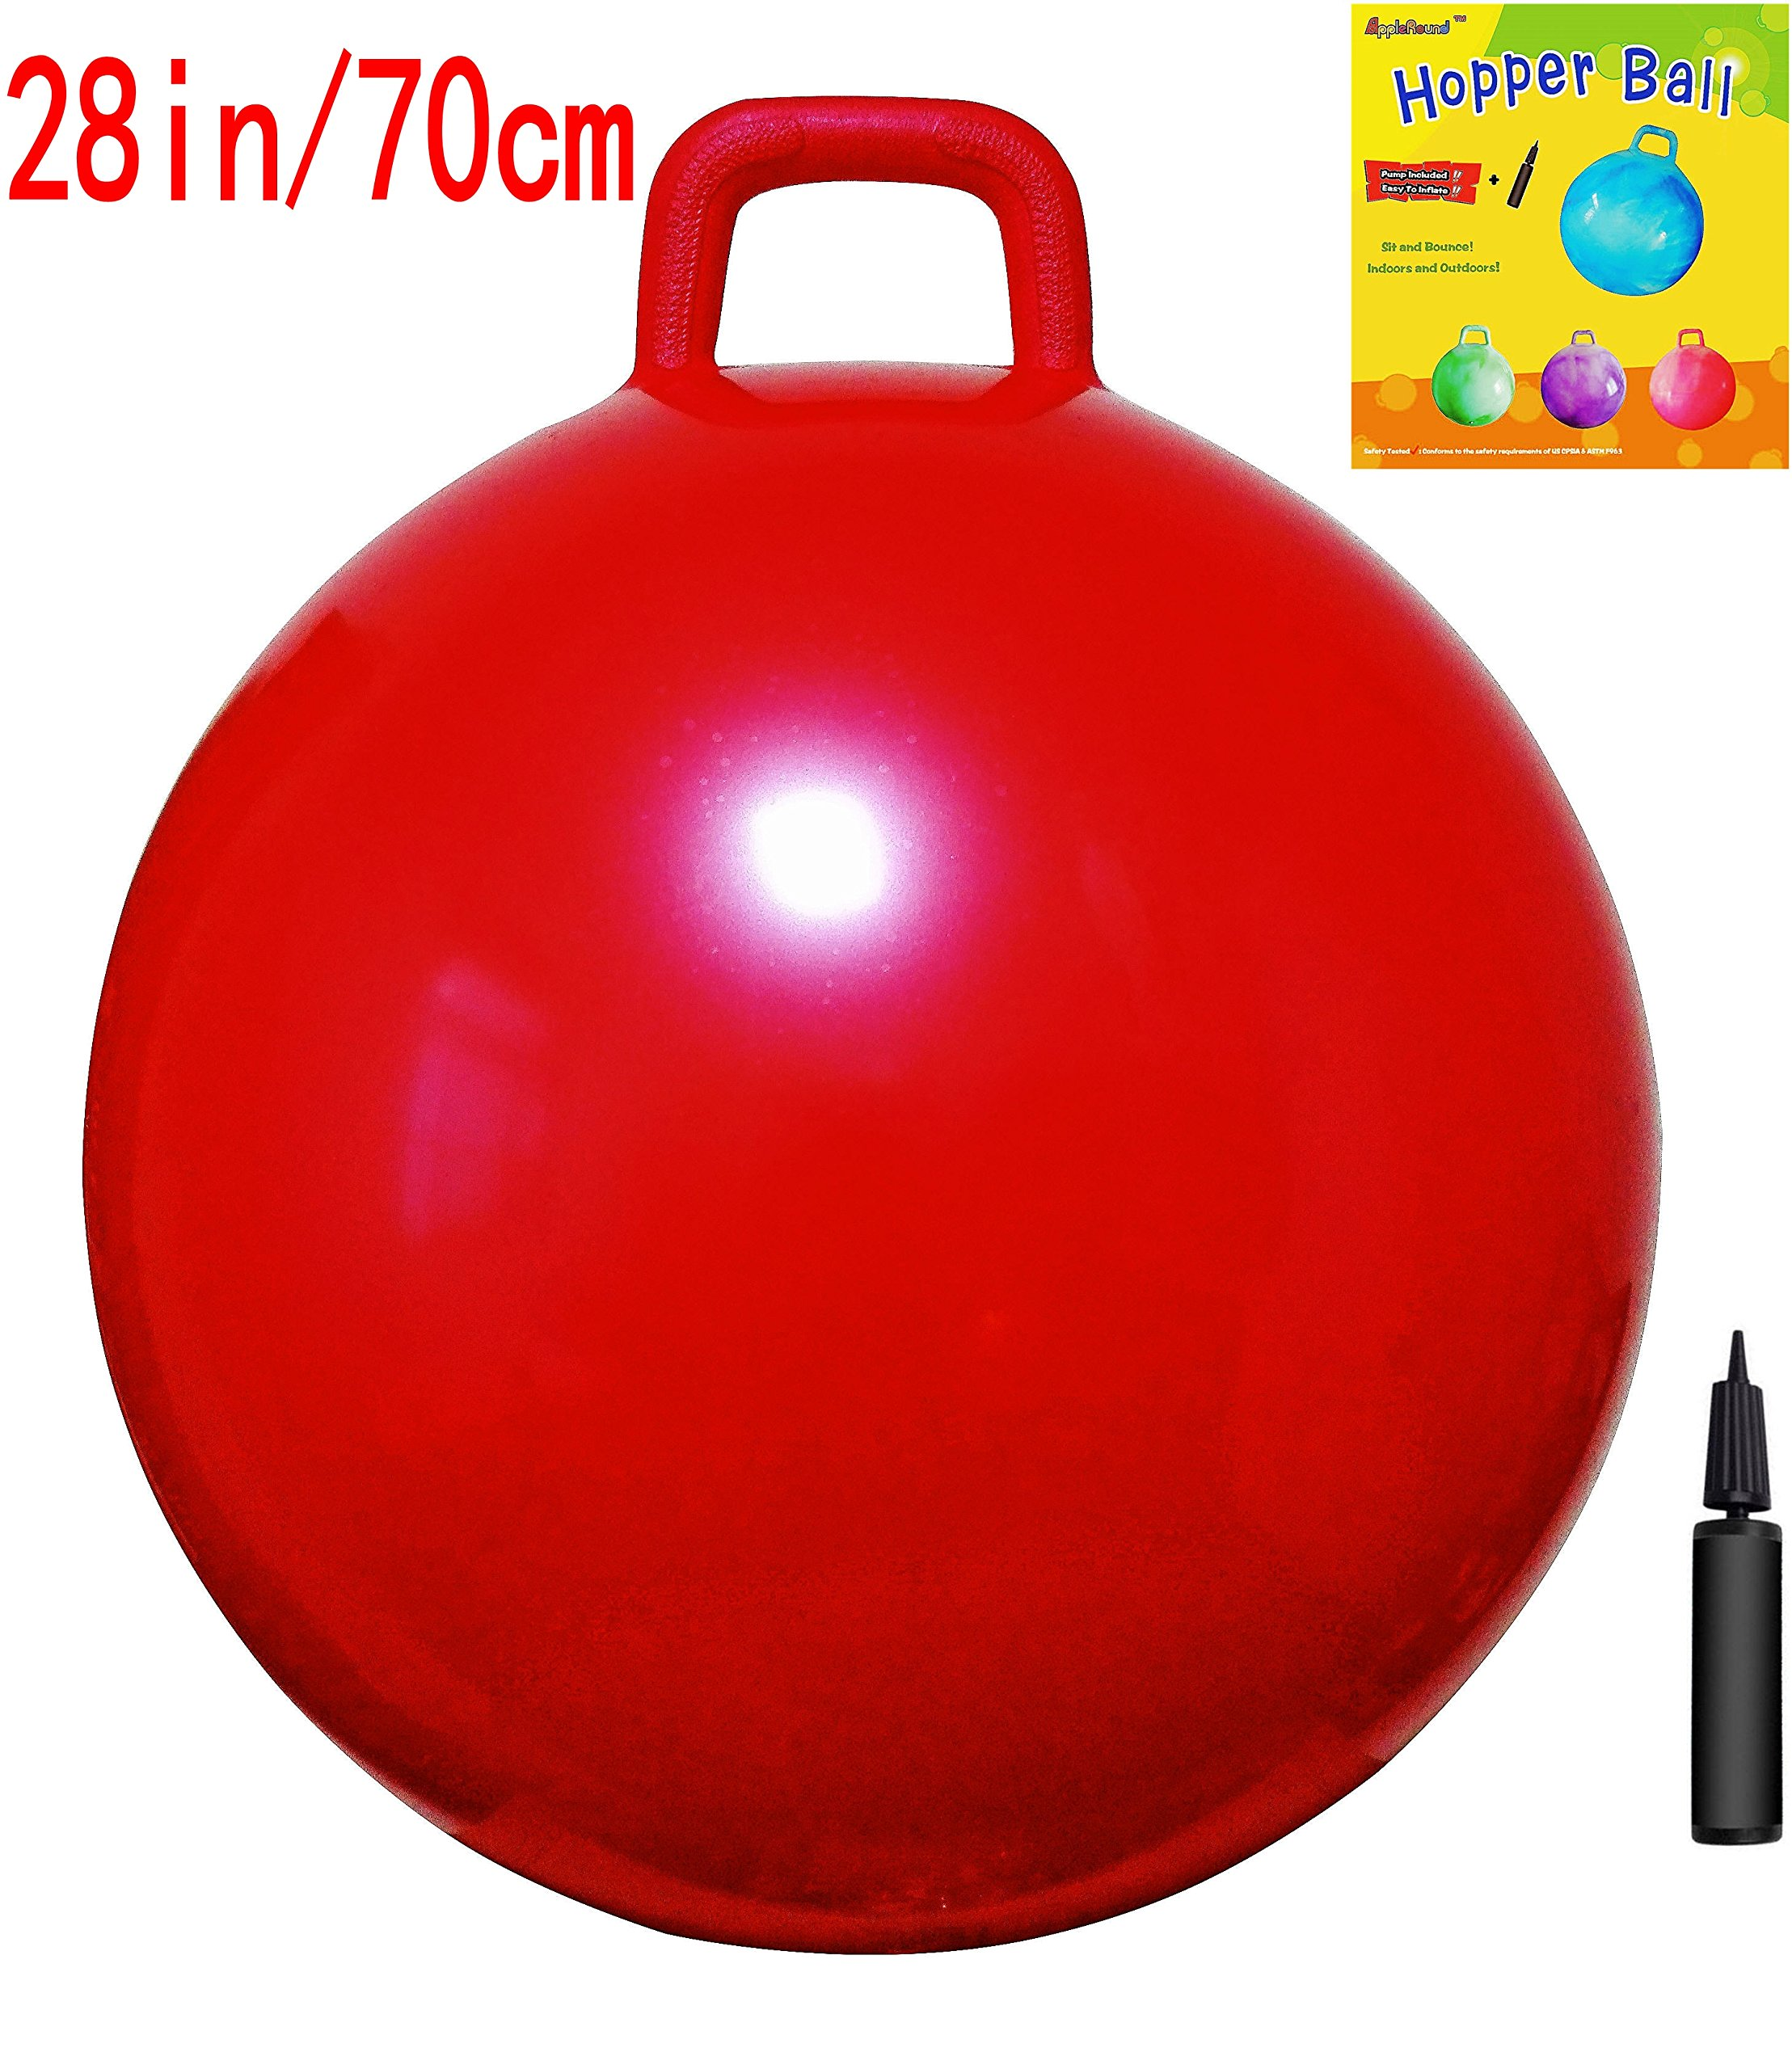 AppleRound Space Hopper Ball with Air Pump: 28in/70cm Diameter for Age 13+, Hop Ball, Kangaroo Bouncer, Hoppity Hop, Jumping Ball, Sit & Bounce